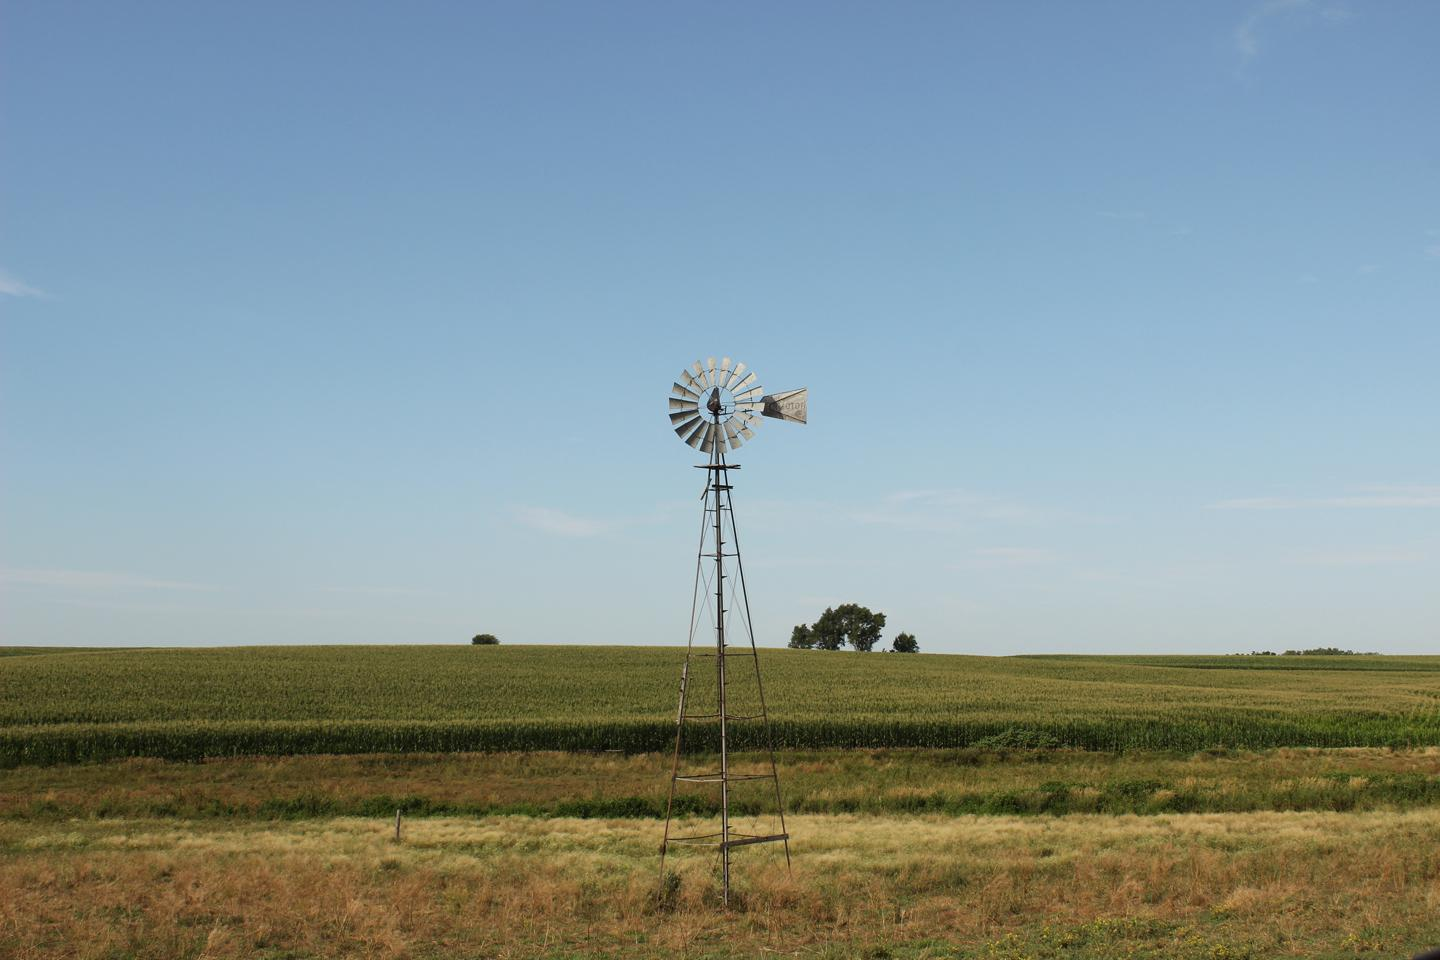 windmill in Nebraska prairie